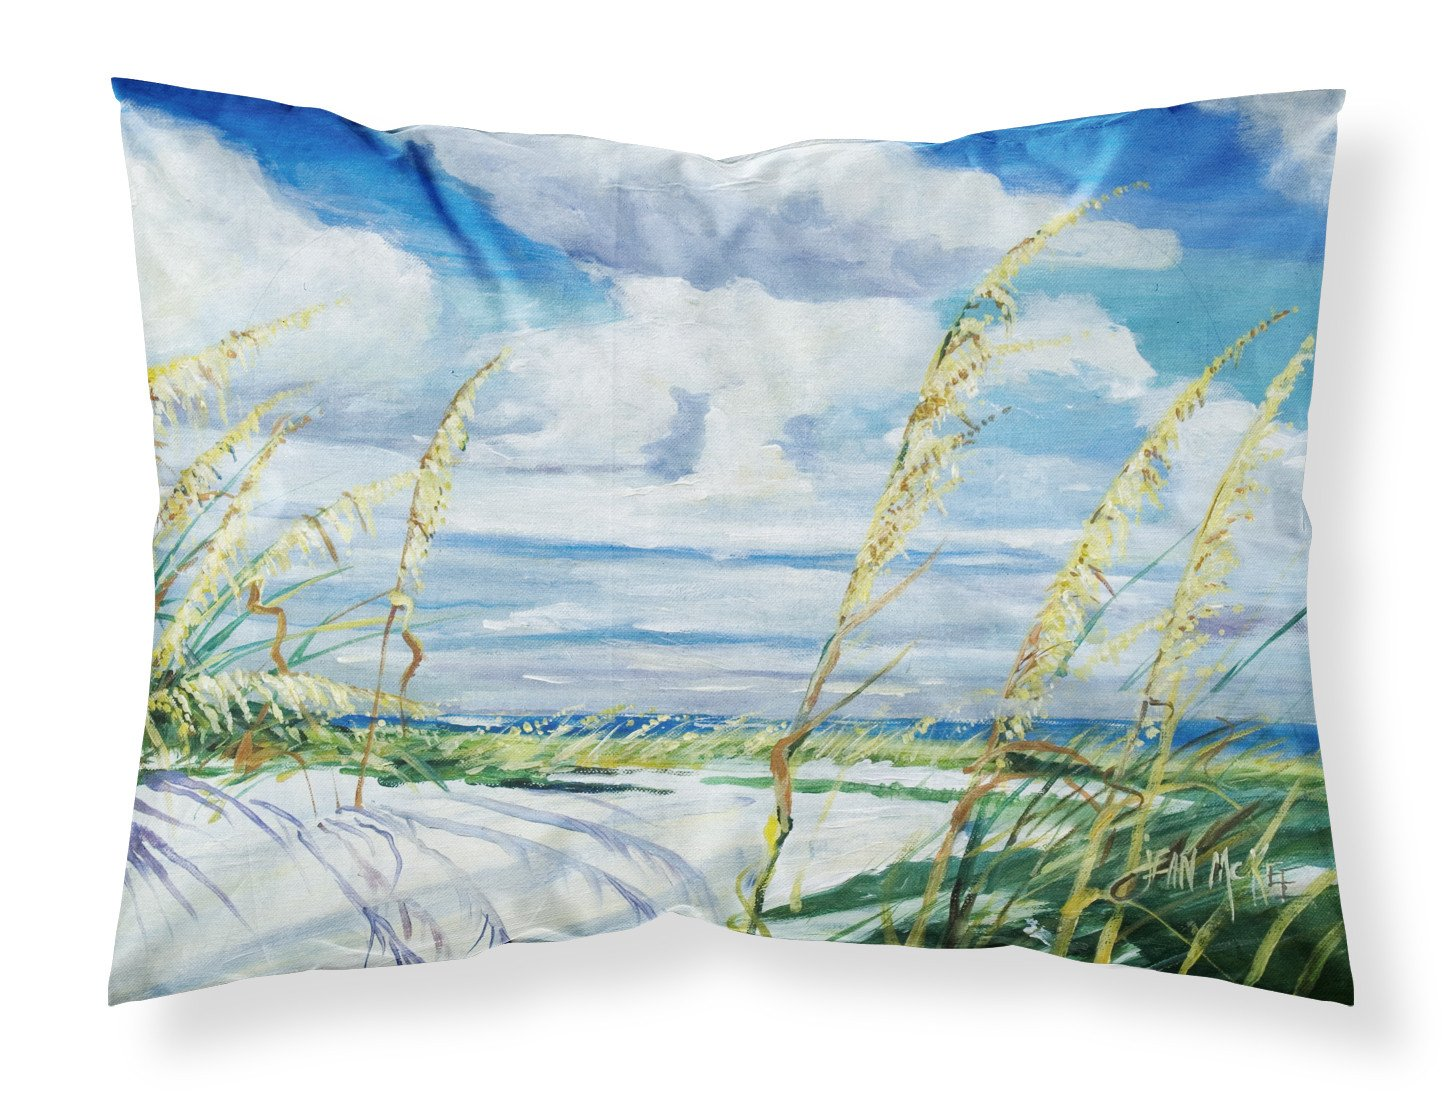 Buy this Sea Oats Fabric Standard Pillowcase JMK1123PILLOWCASE